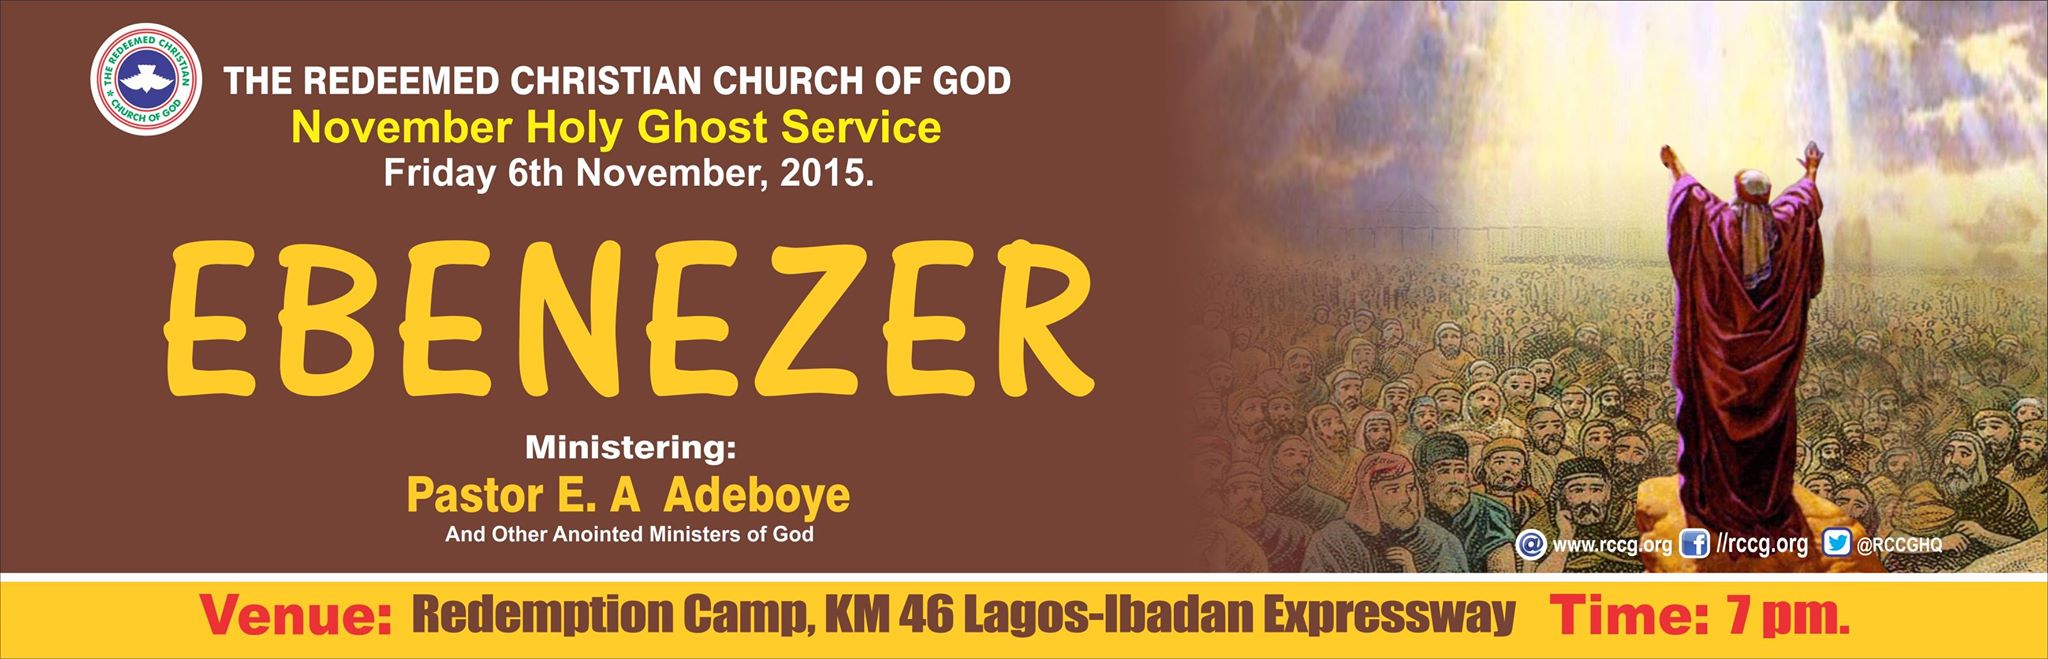 RCCG Nov 2015 Holy Ghost service